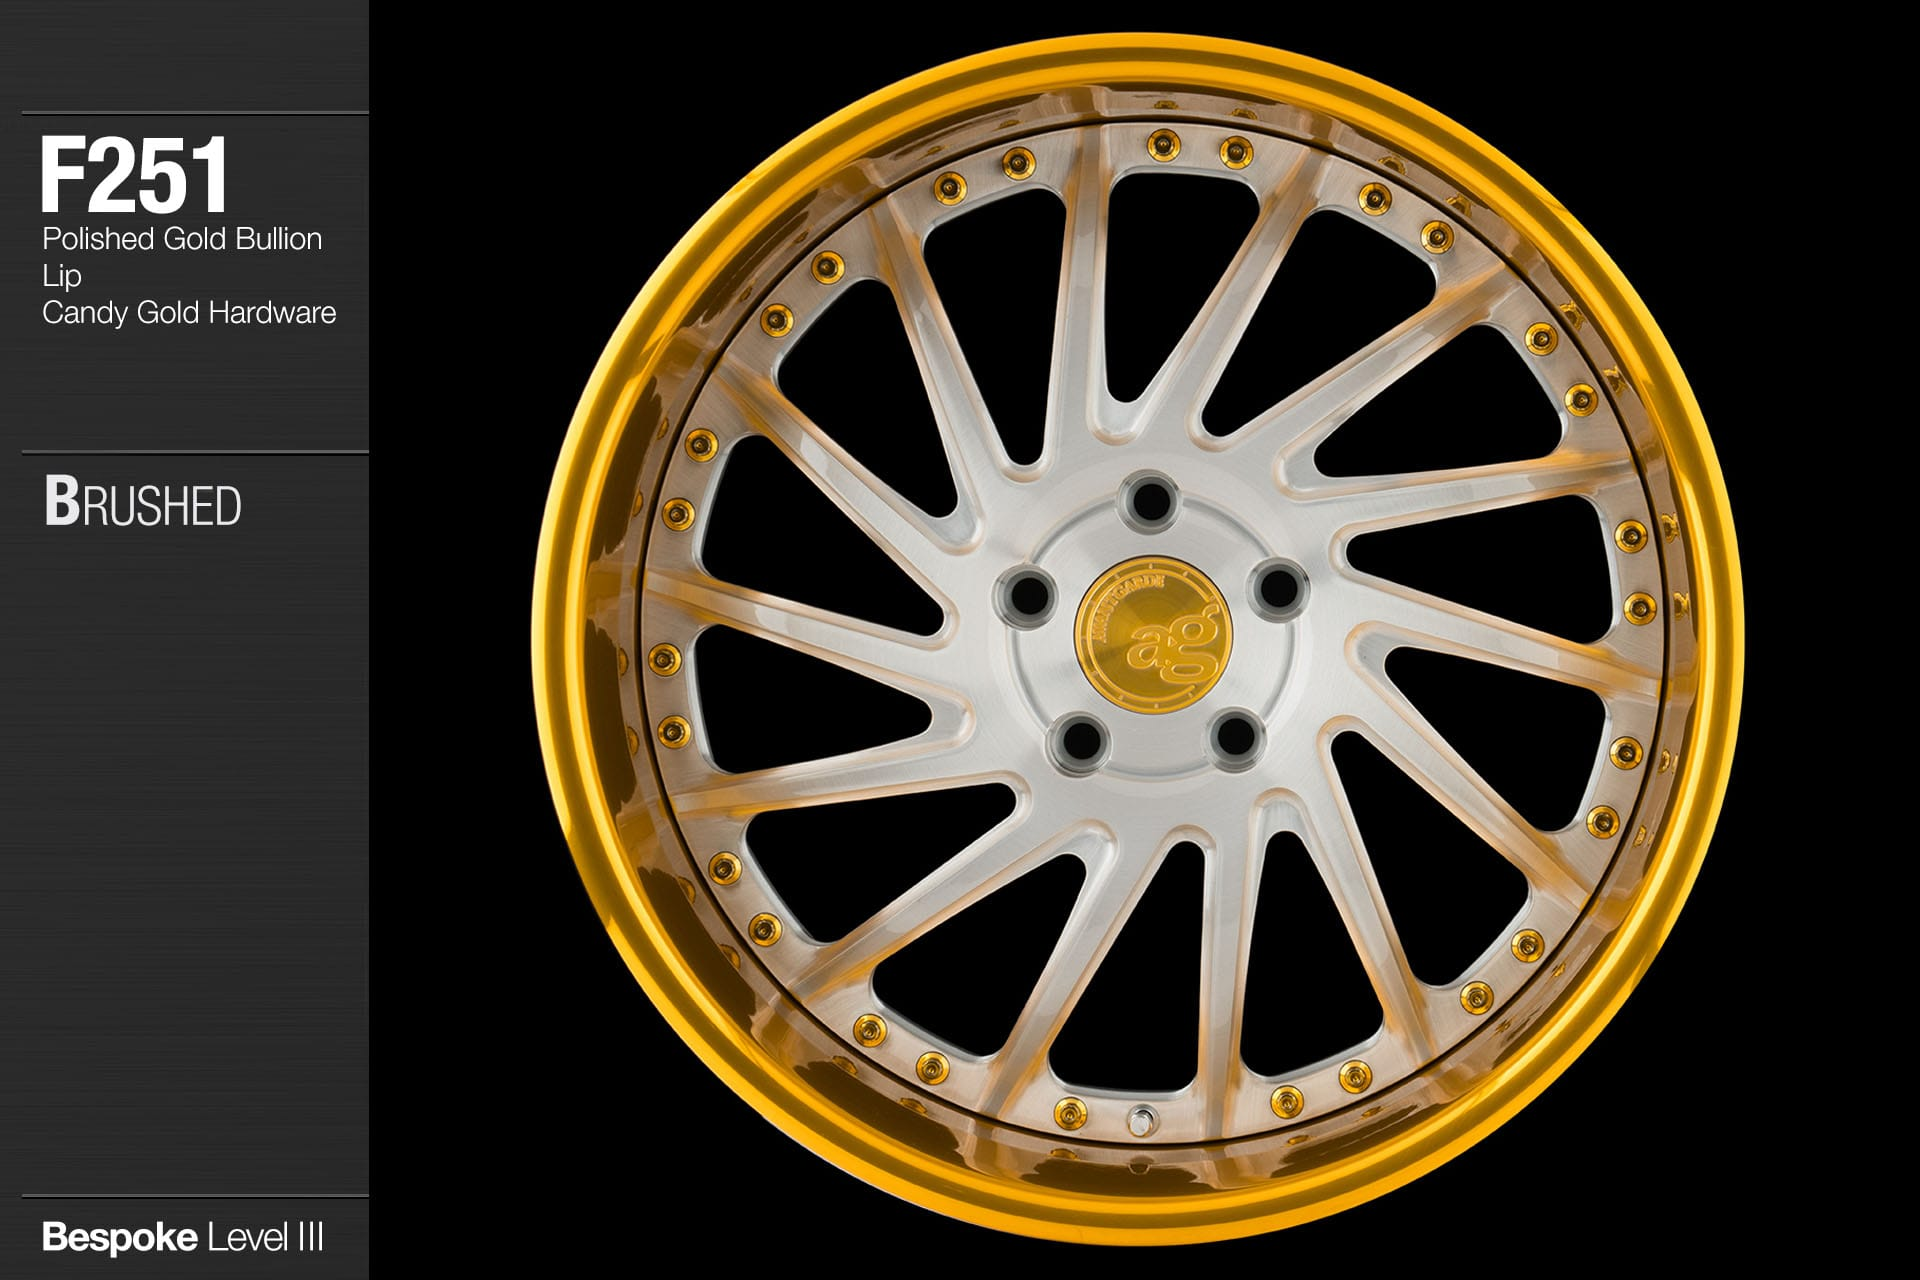 avant-garde-ag-wheels-f251-brushed-face-polished-gold-bullion-lip-candy-hardware-1-min